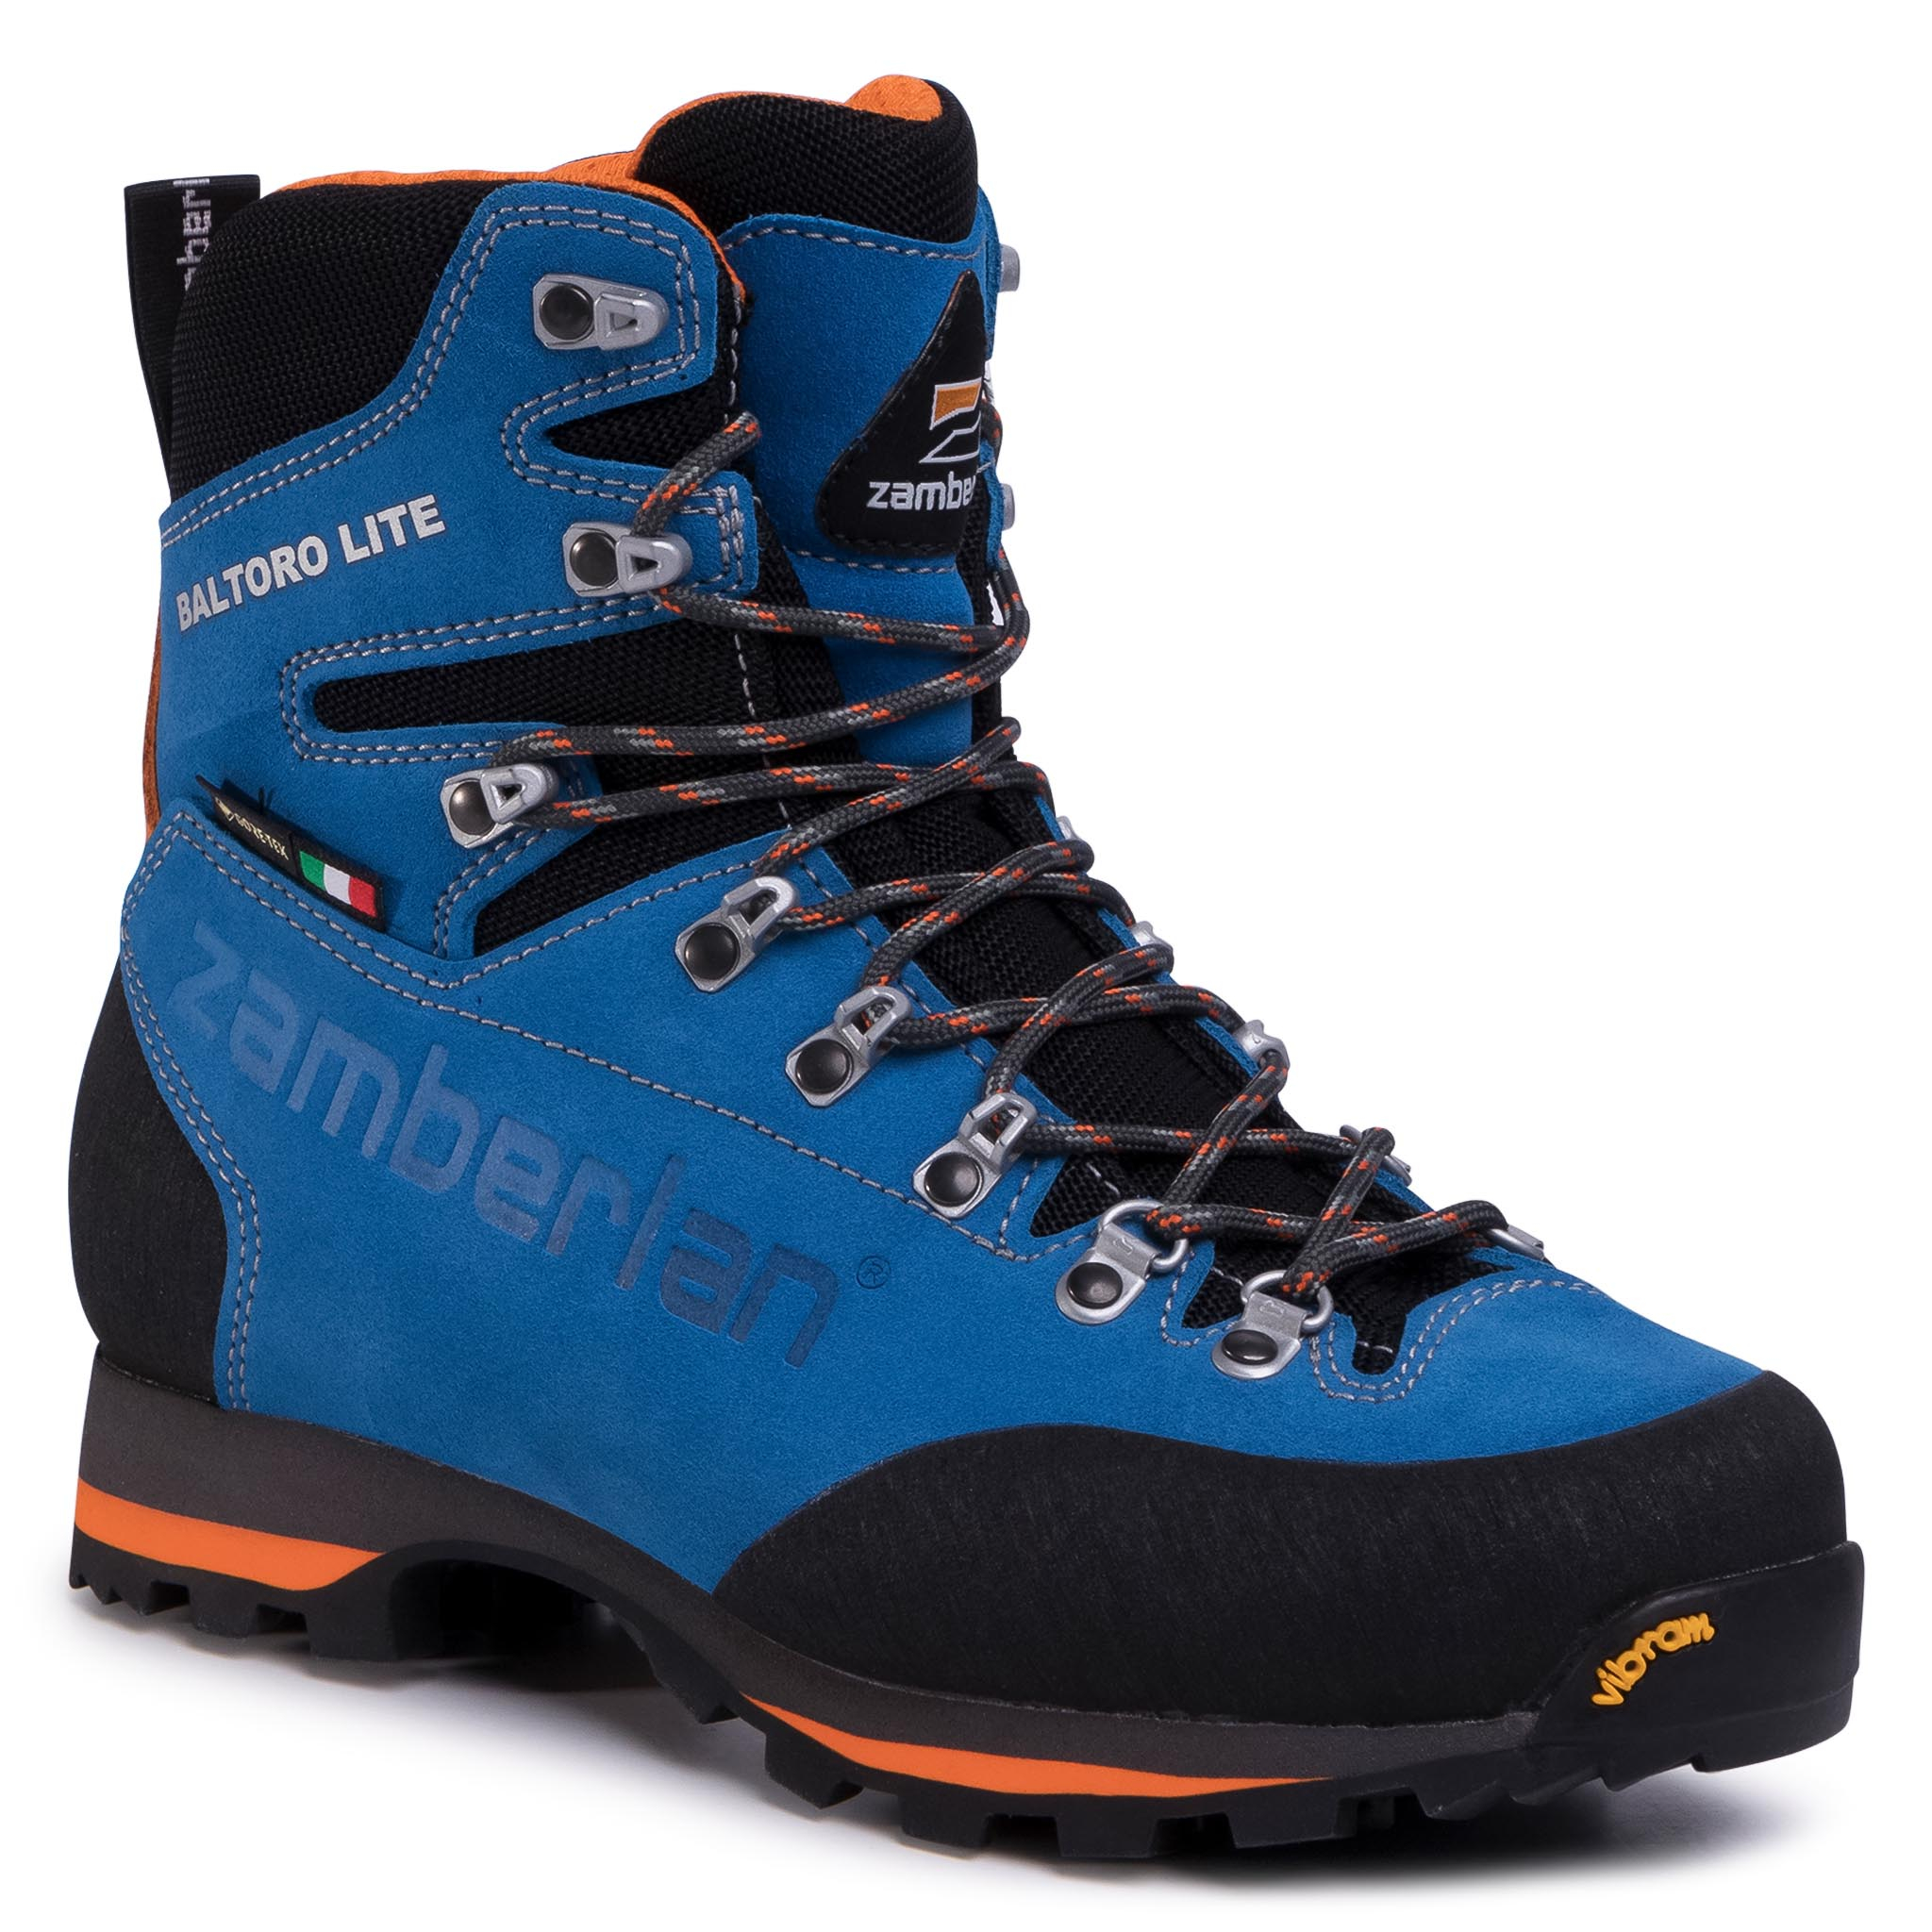 Trekkings Zamberlan - 1110 Baltoro Lite Gtx Gore-Tex Royal Blue imagine epantofi.ro 2021